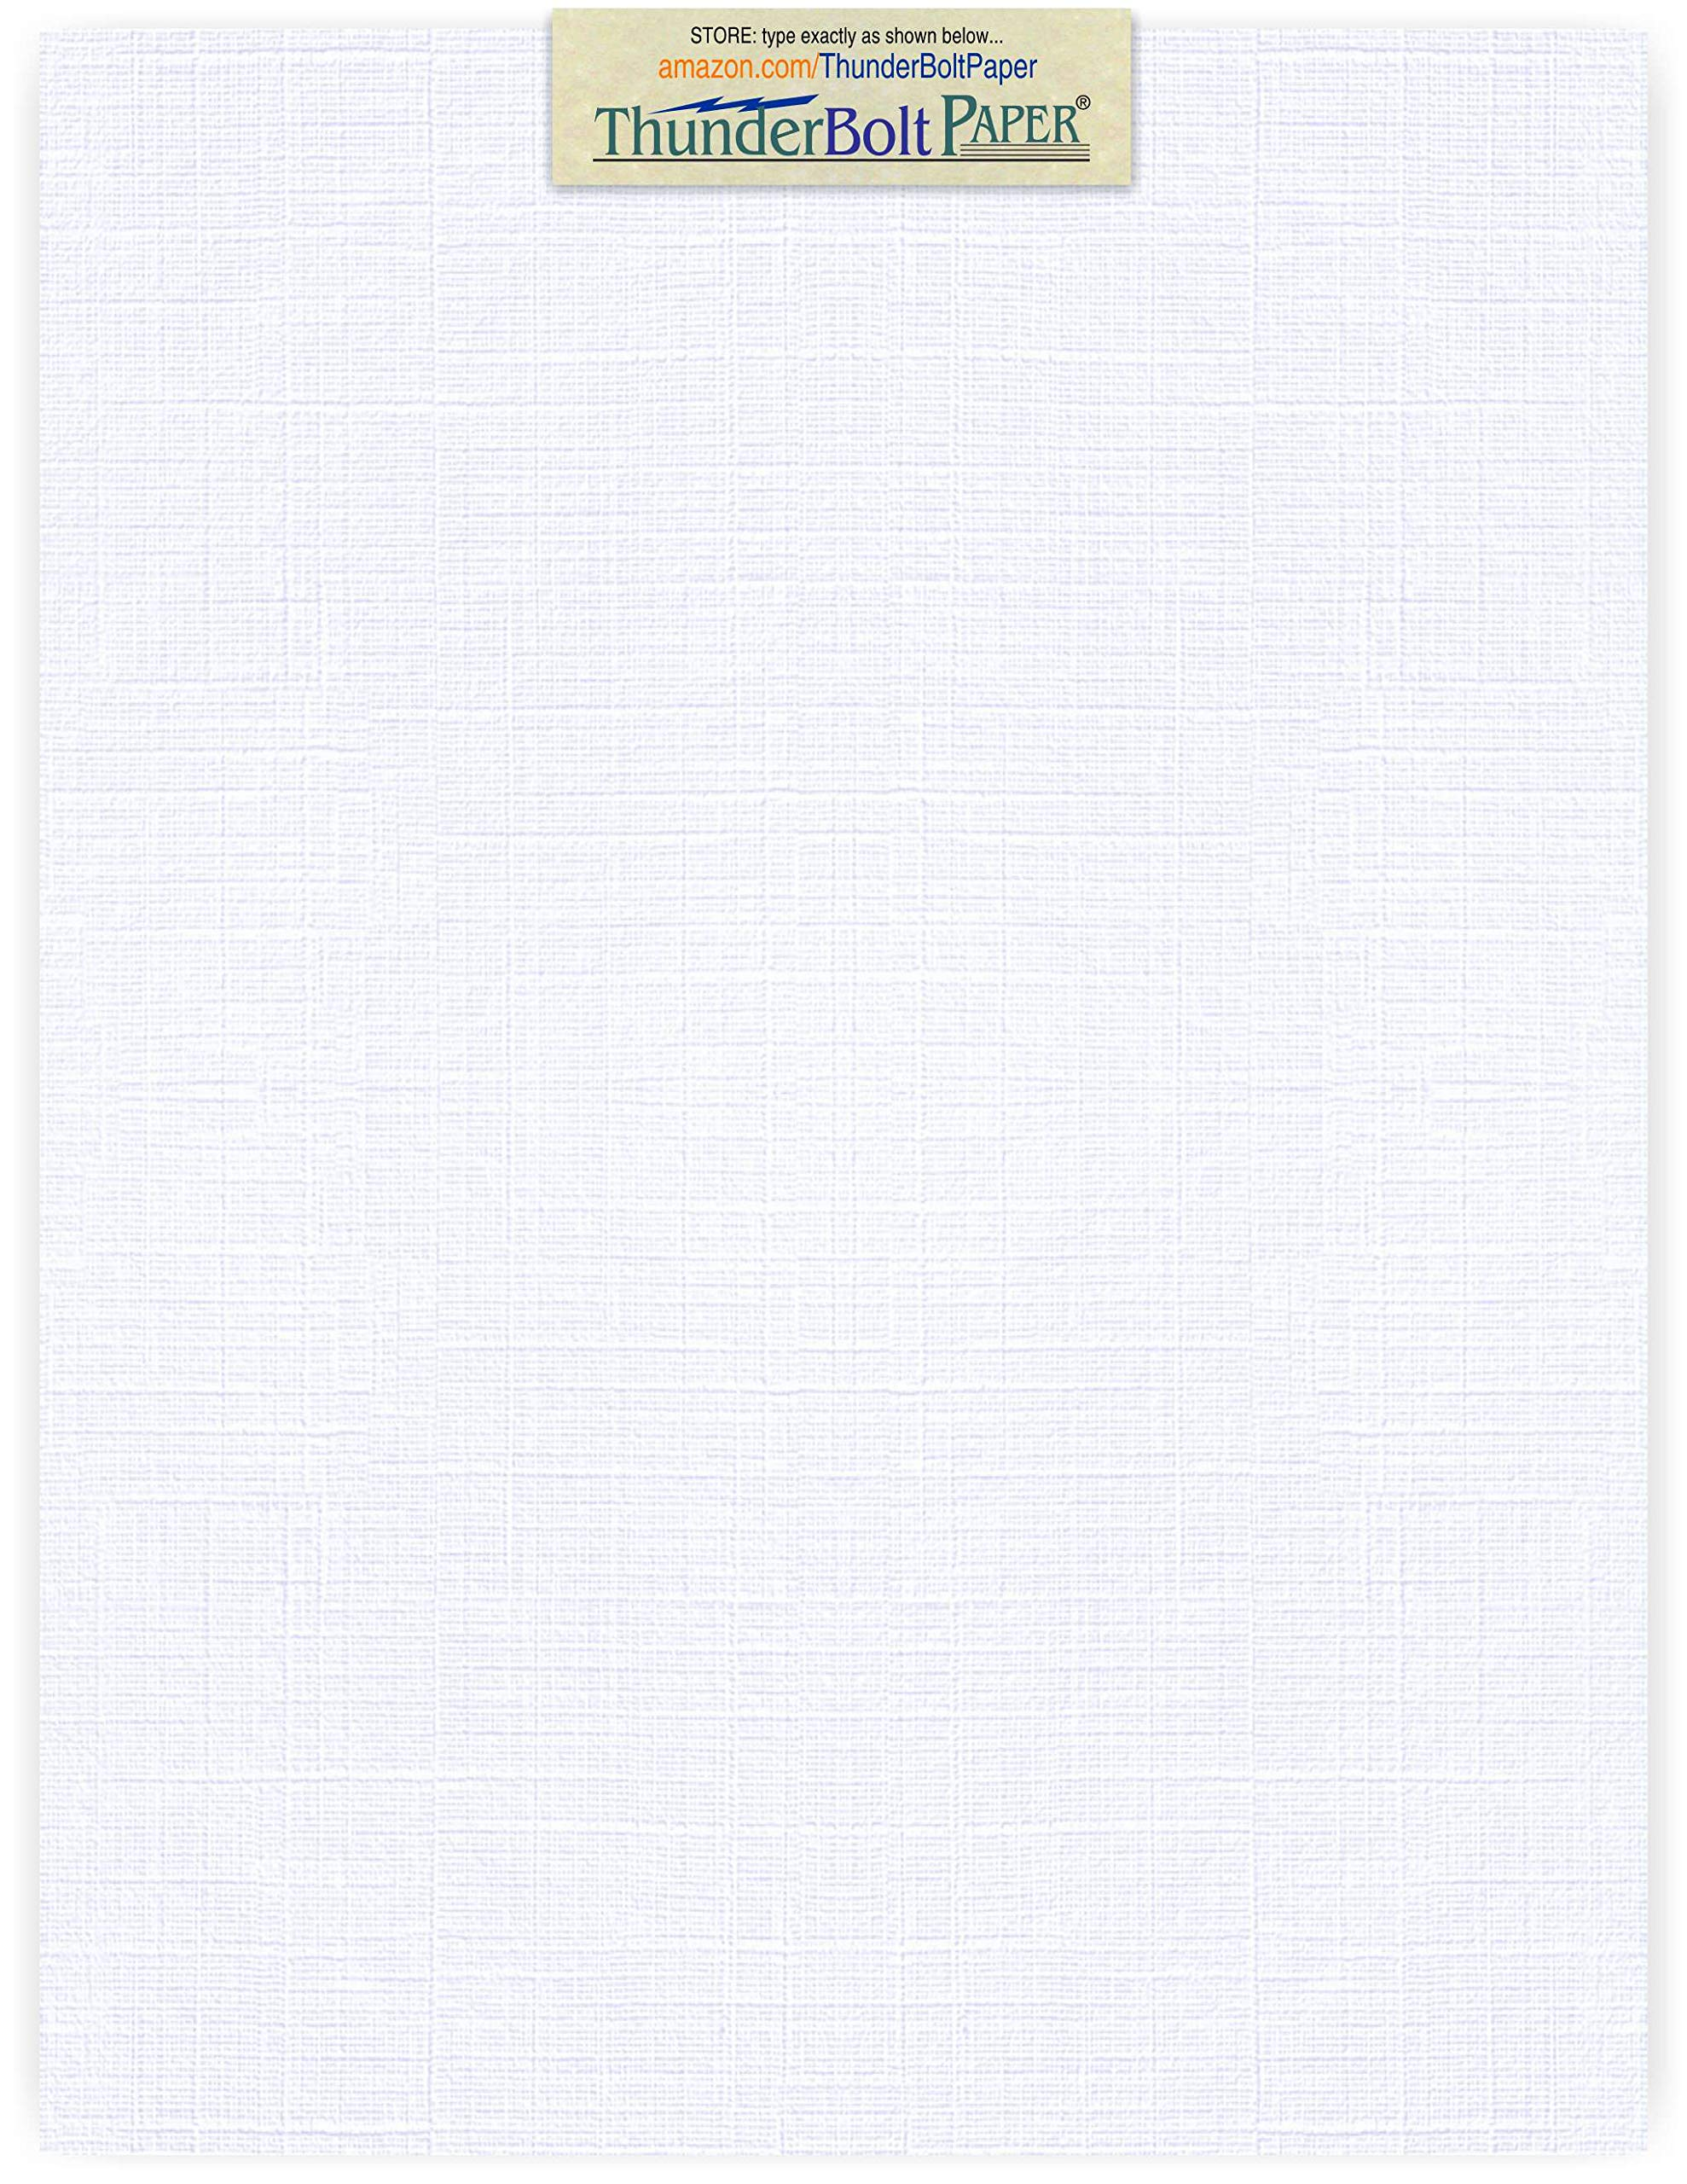 100 Bright White Linen 80# Cover Paper Sheets - 8.5'' X 11'' (8.5X11 Inches) Standard Letter|Flyer Size - 80 lb/Pound Card Weight - Fine Linen Textured Finish - Quality Cardstock by ThunderBolt Paper